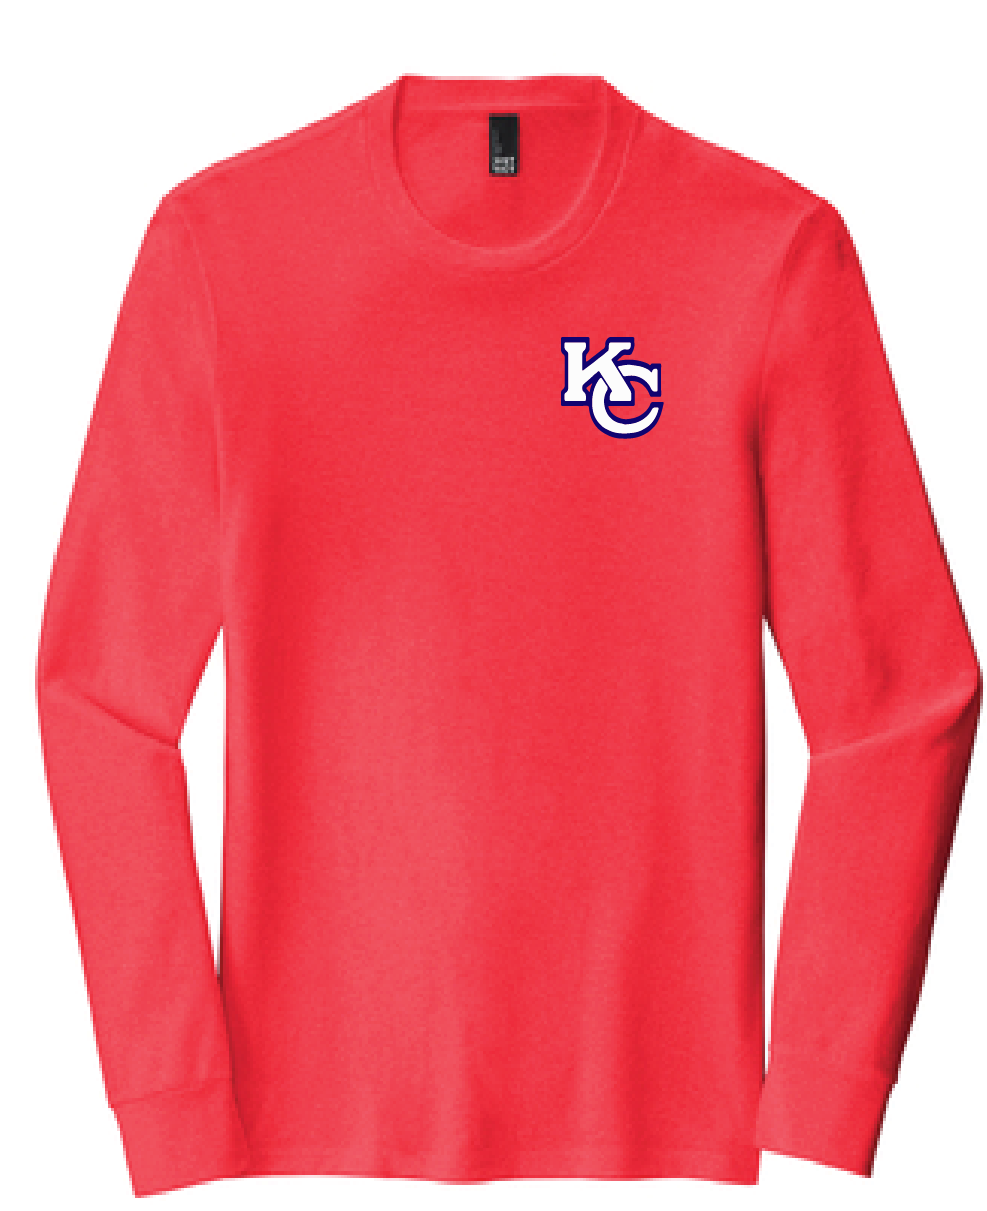 Unisex Softstyle Long Sleeve Tee/ Heather Red / Kempsville High School